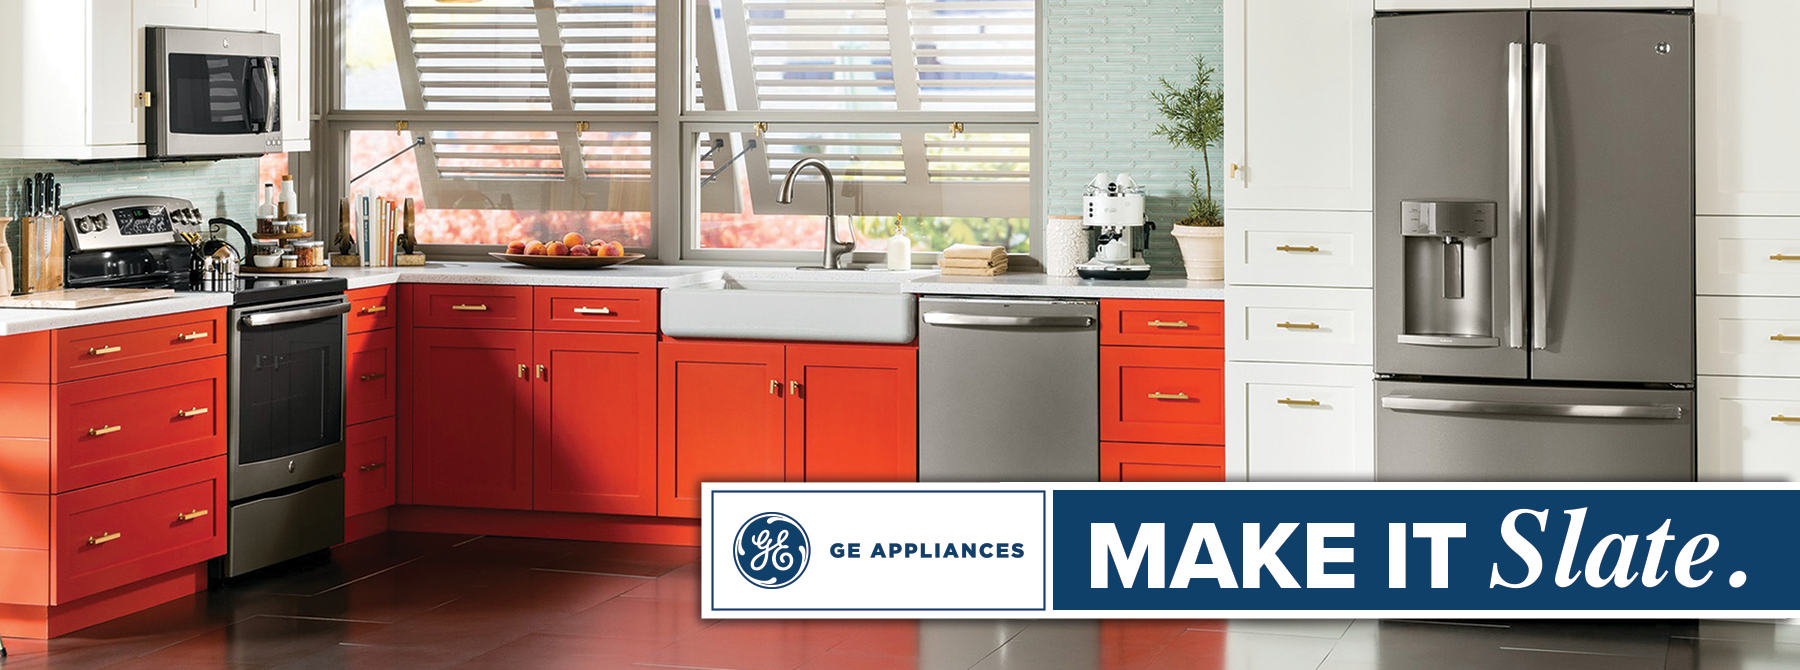 GE Appliances Make It Slate.